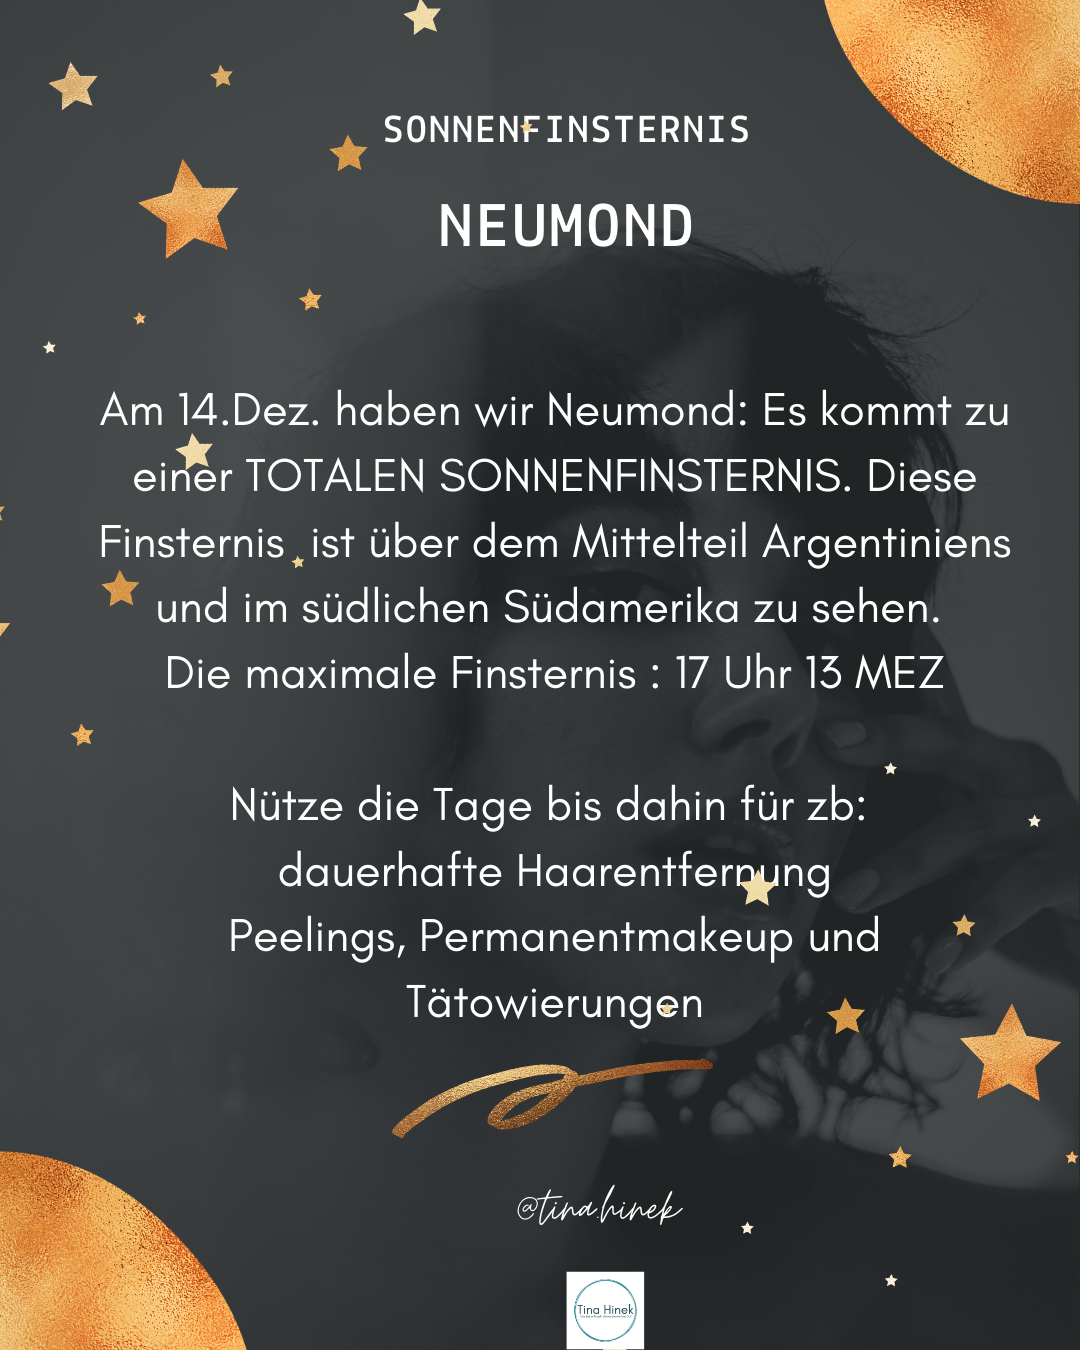 Neumond - Sonnenfinsternis 14.12.2020